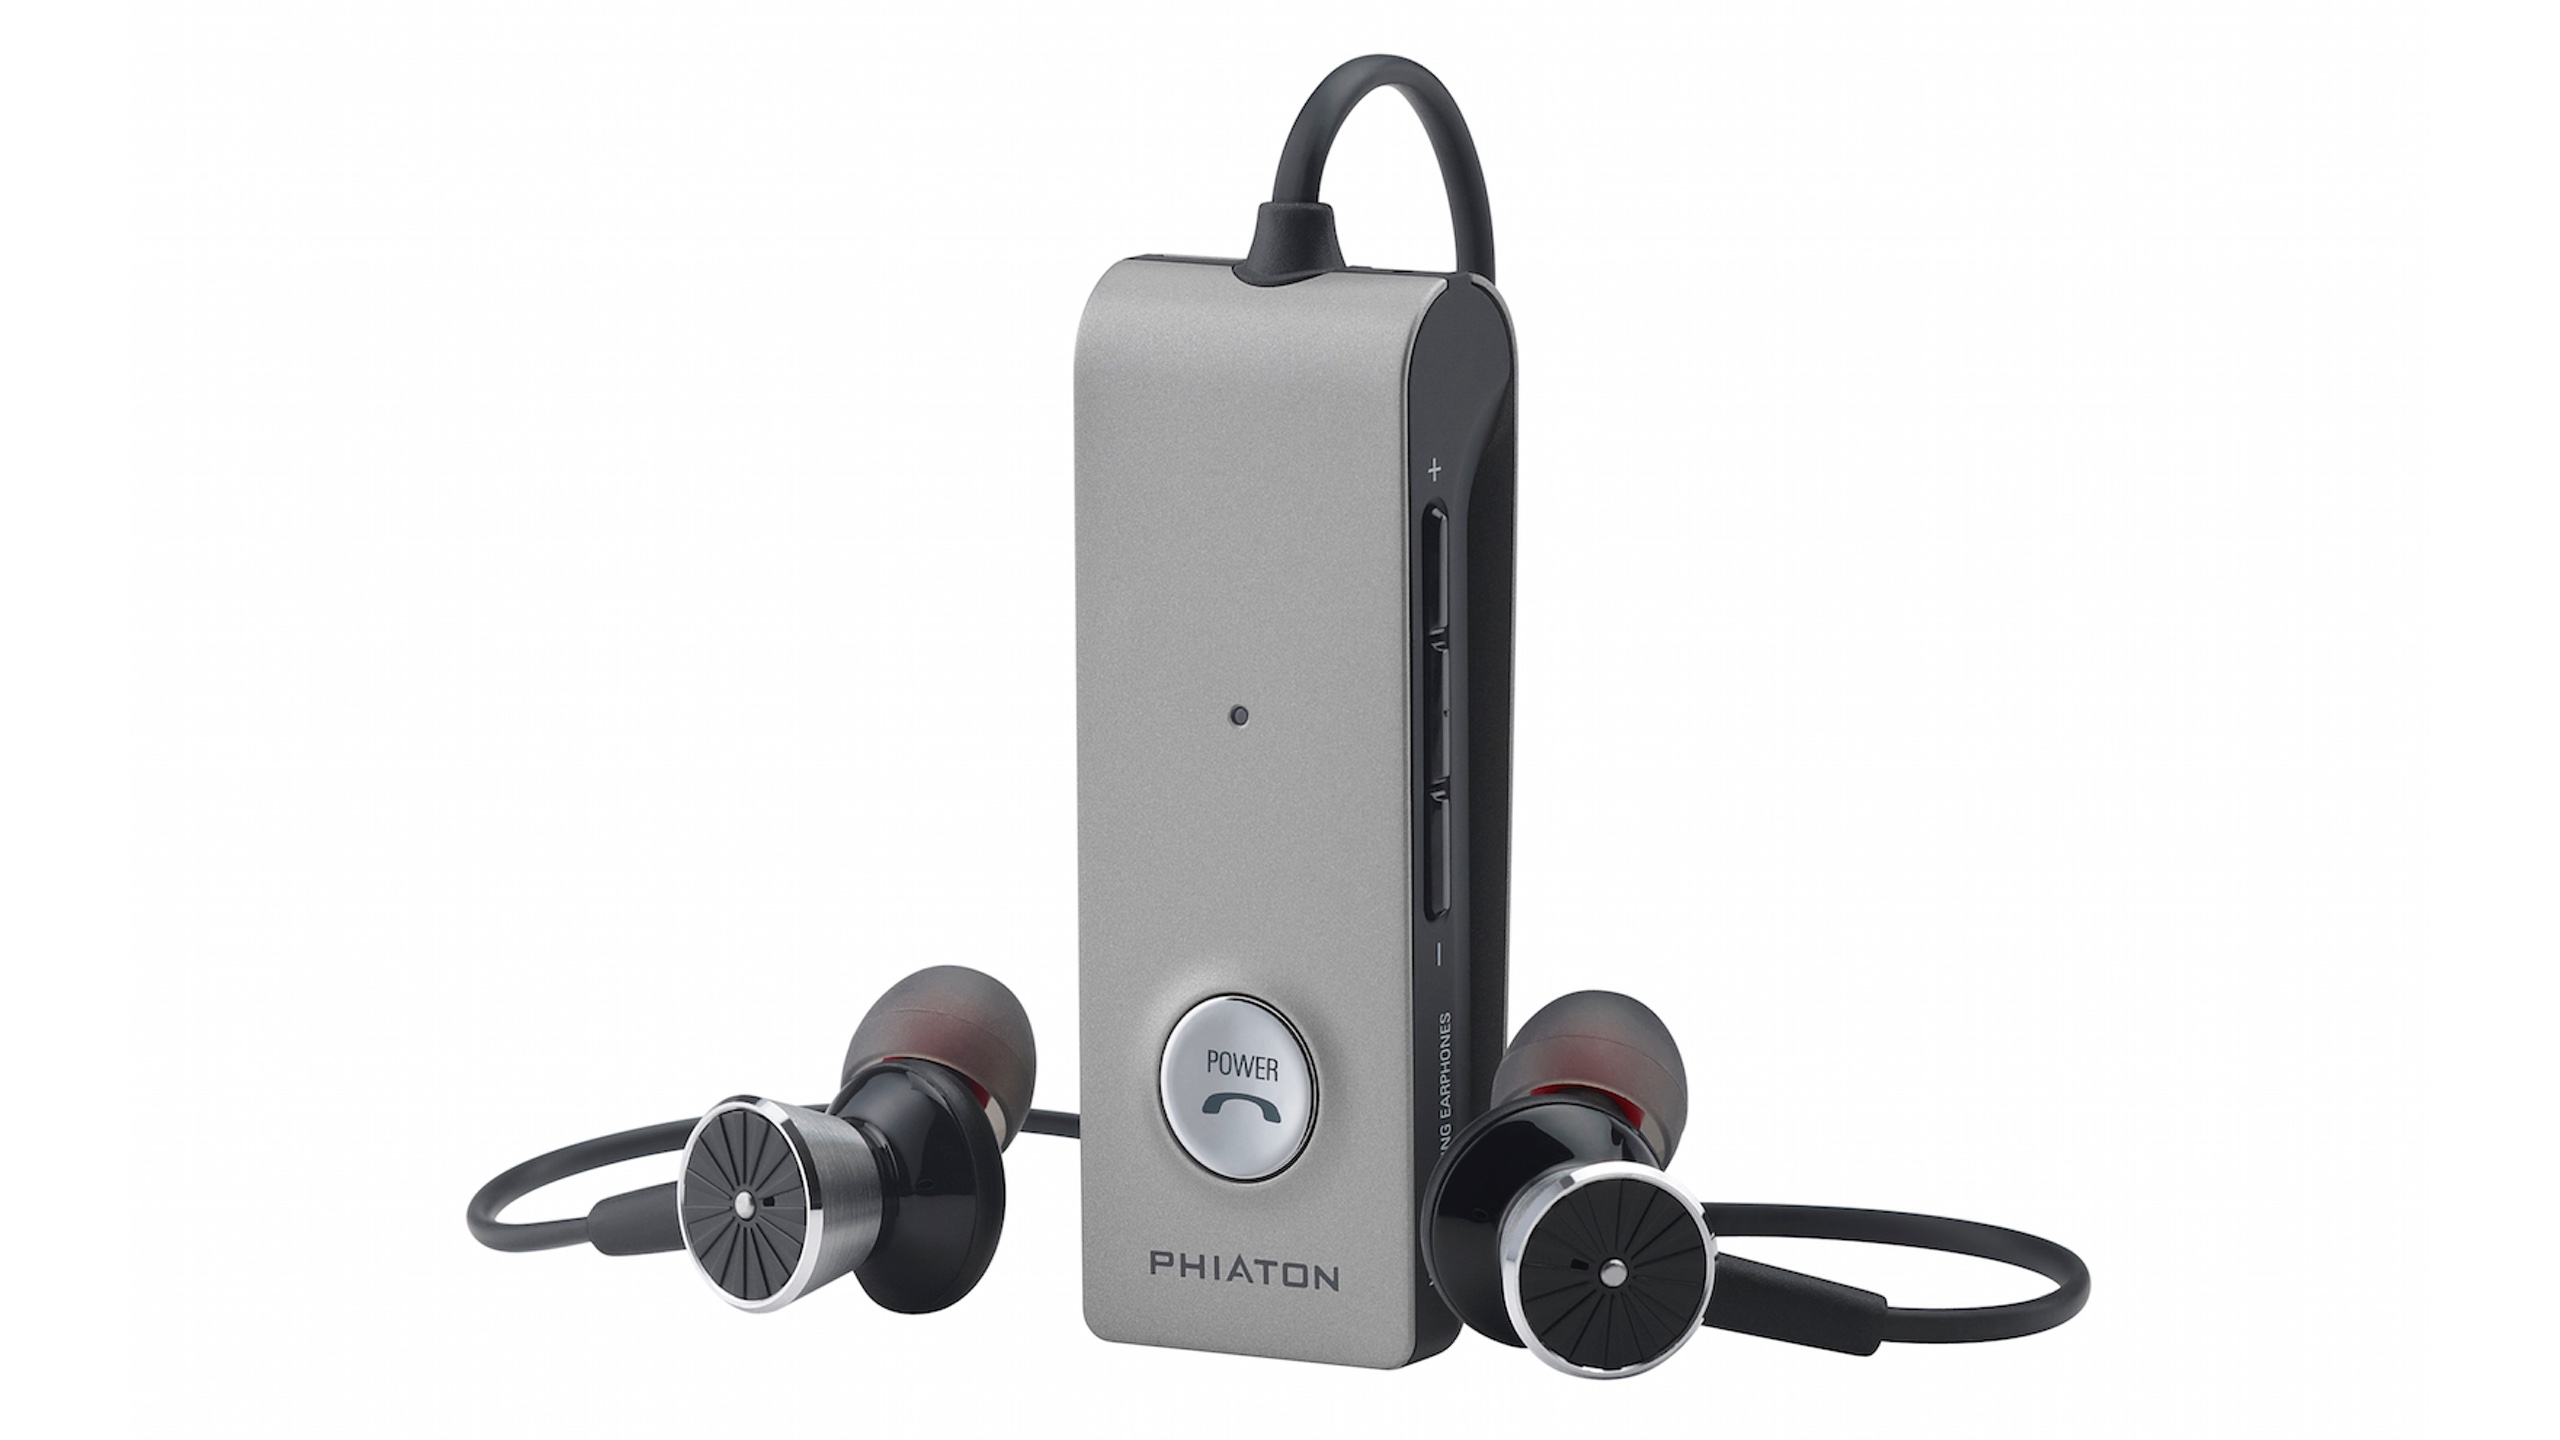 Phiaton-BT-220-nc-in-ear-headphones